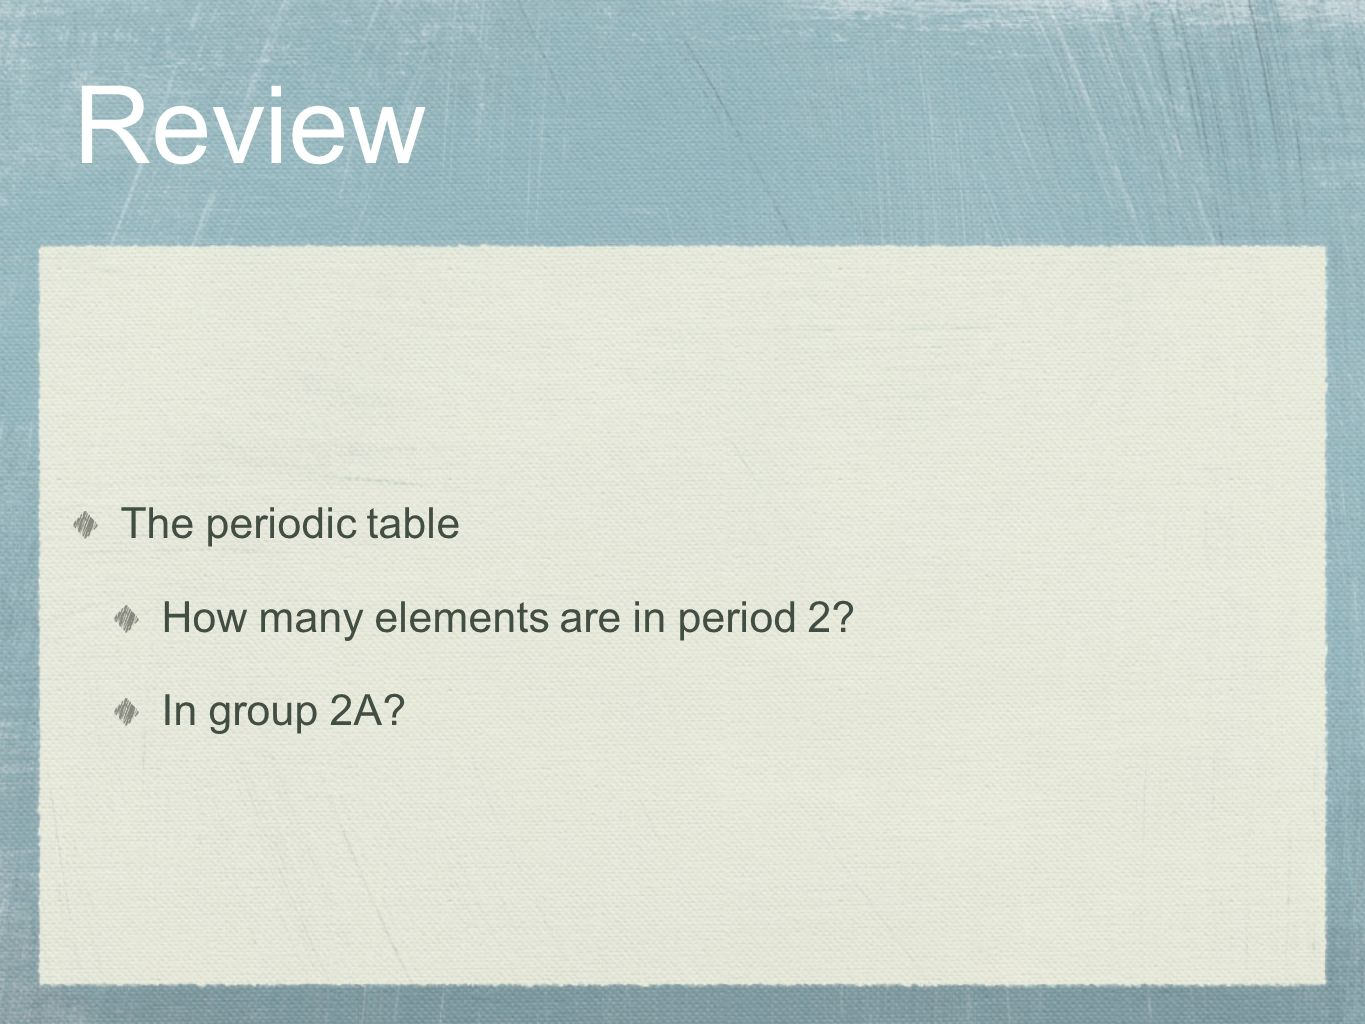 Periodic table group 2a images periodic table images chemistry chapter 4 atomic structure wilbraham staley matta in group 2a review the periodic table how gamestrikefo Choice Image